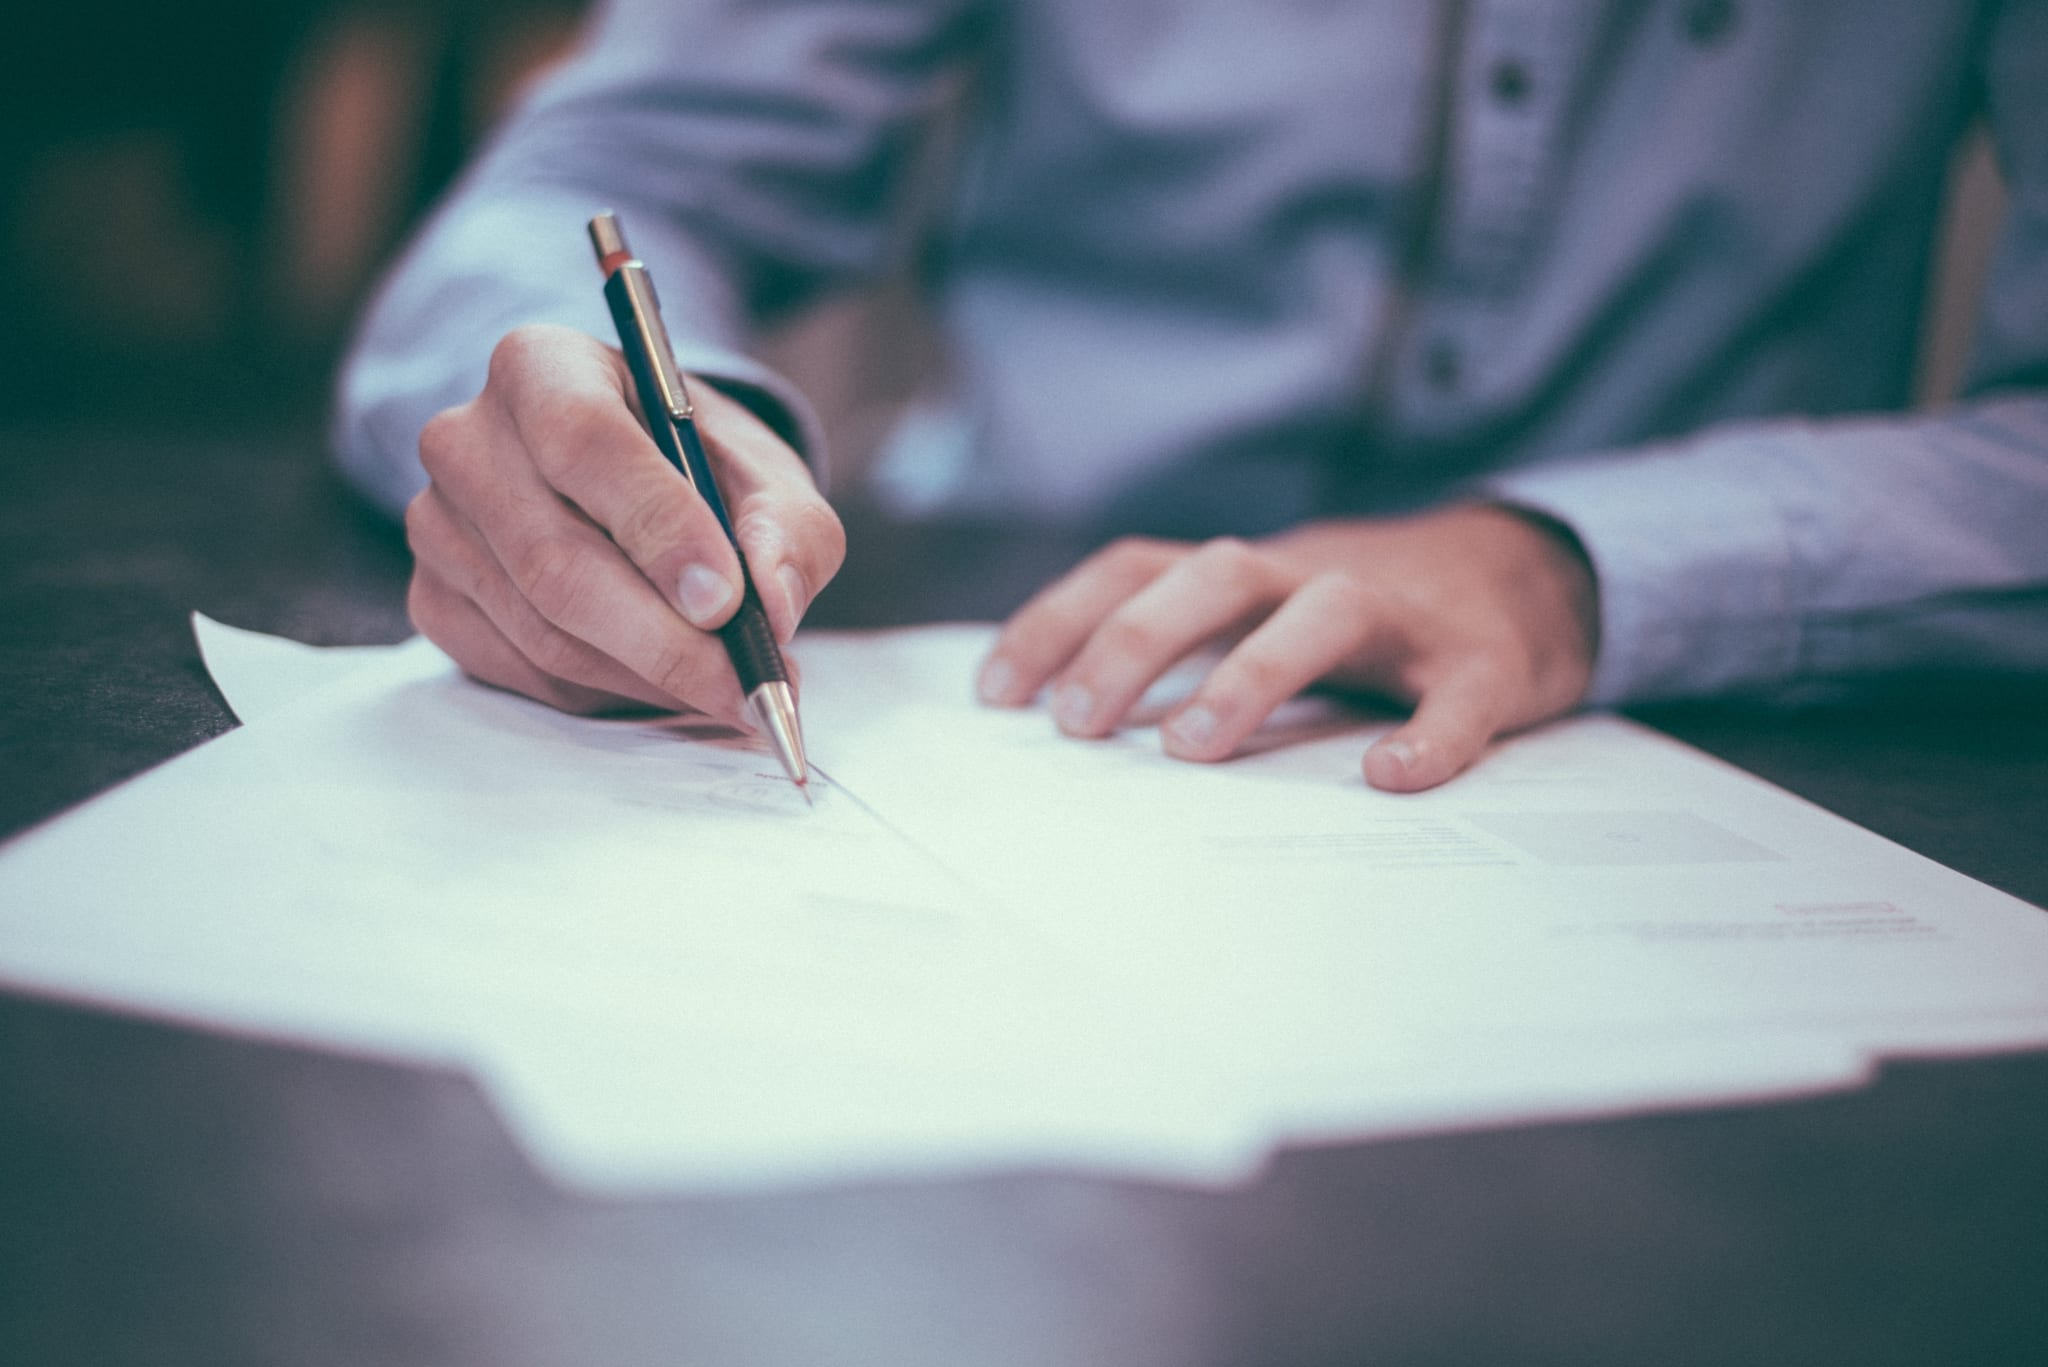 How to Prove Your Spouse Forged Your Signature